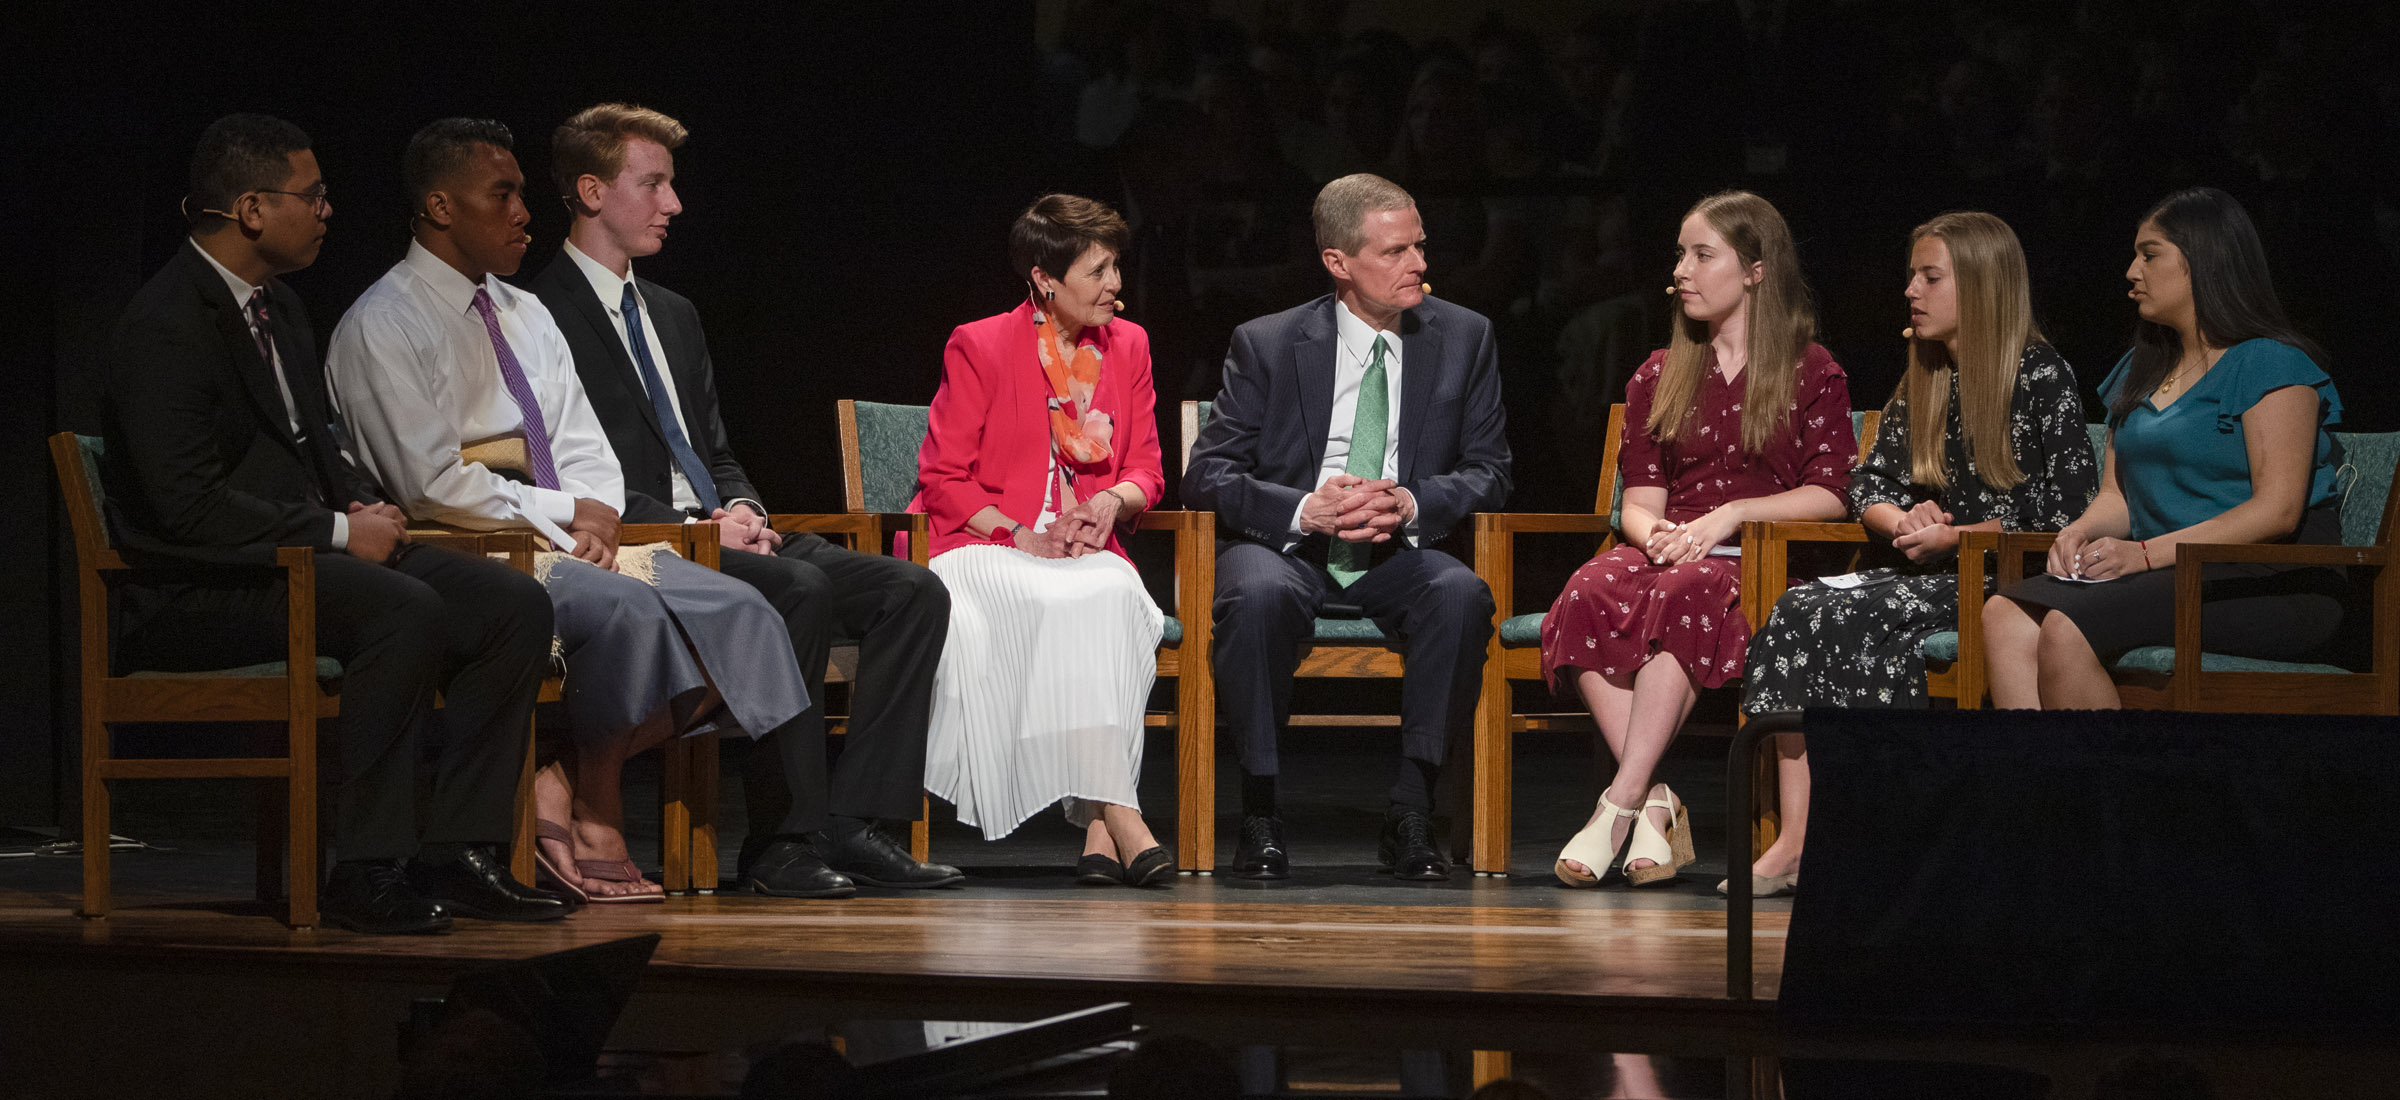 Elder David A. Bednar of the Quorum of the Twelve Apostles of The Church of Jesus Christ of Latter-day Saints, and his wife, Sister Susan Bednar, speak with youth in a panel discussion during a youth devotional at the Interstake Center on the Oakland California Temple grounds on Saturday June 15, 2019.